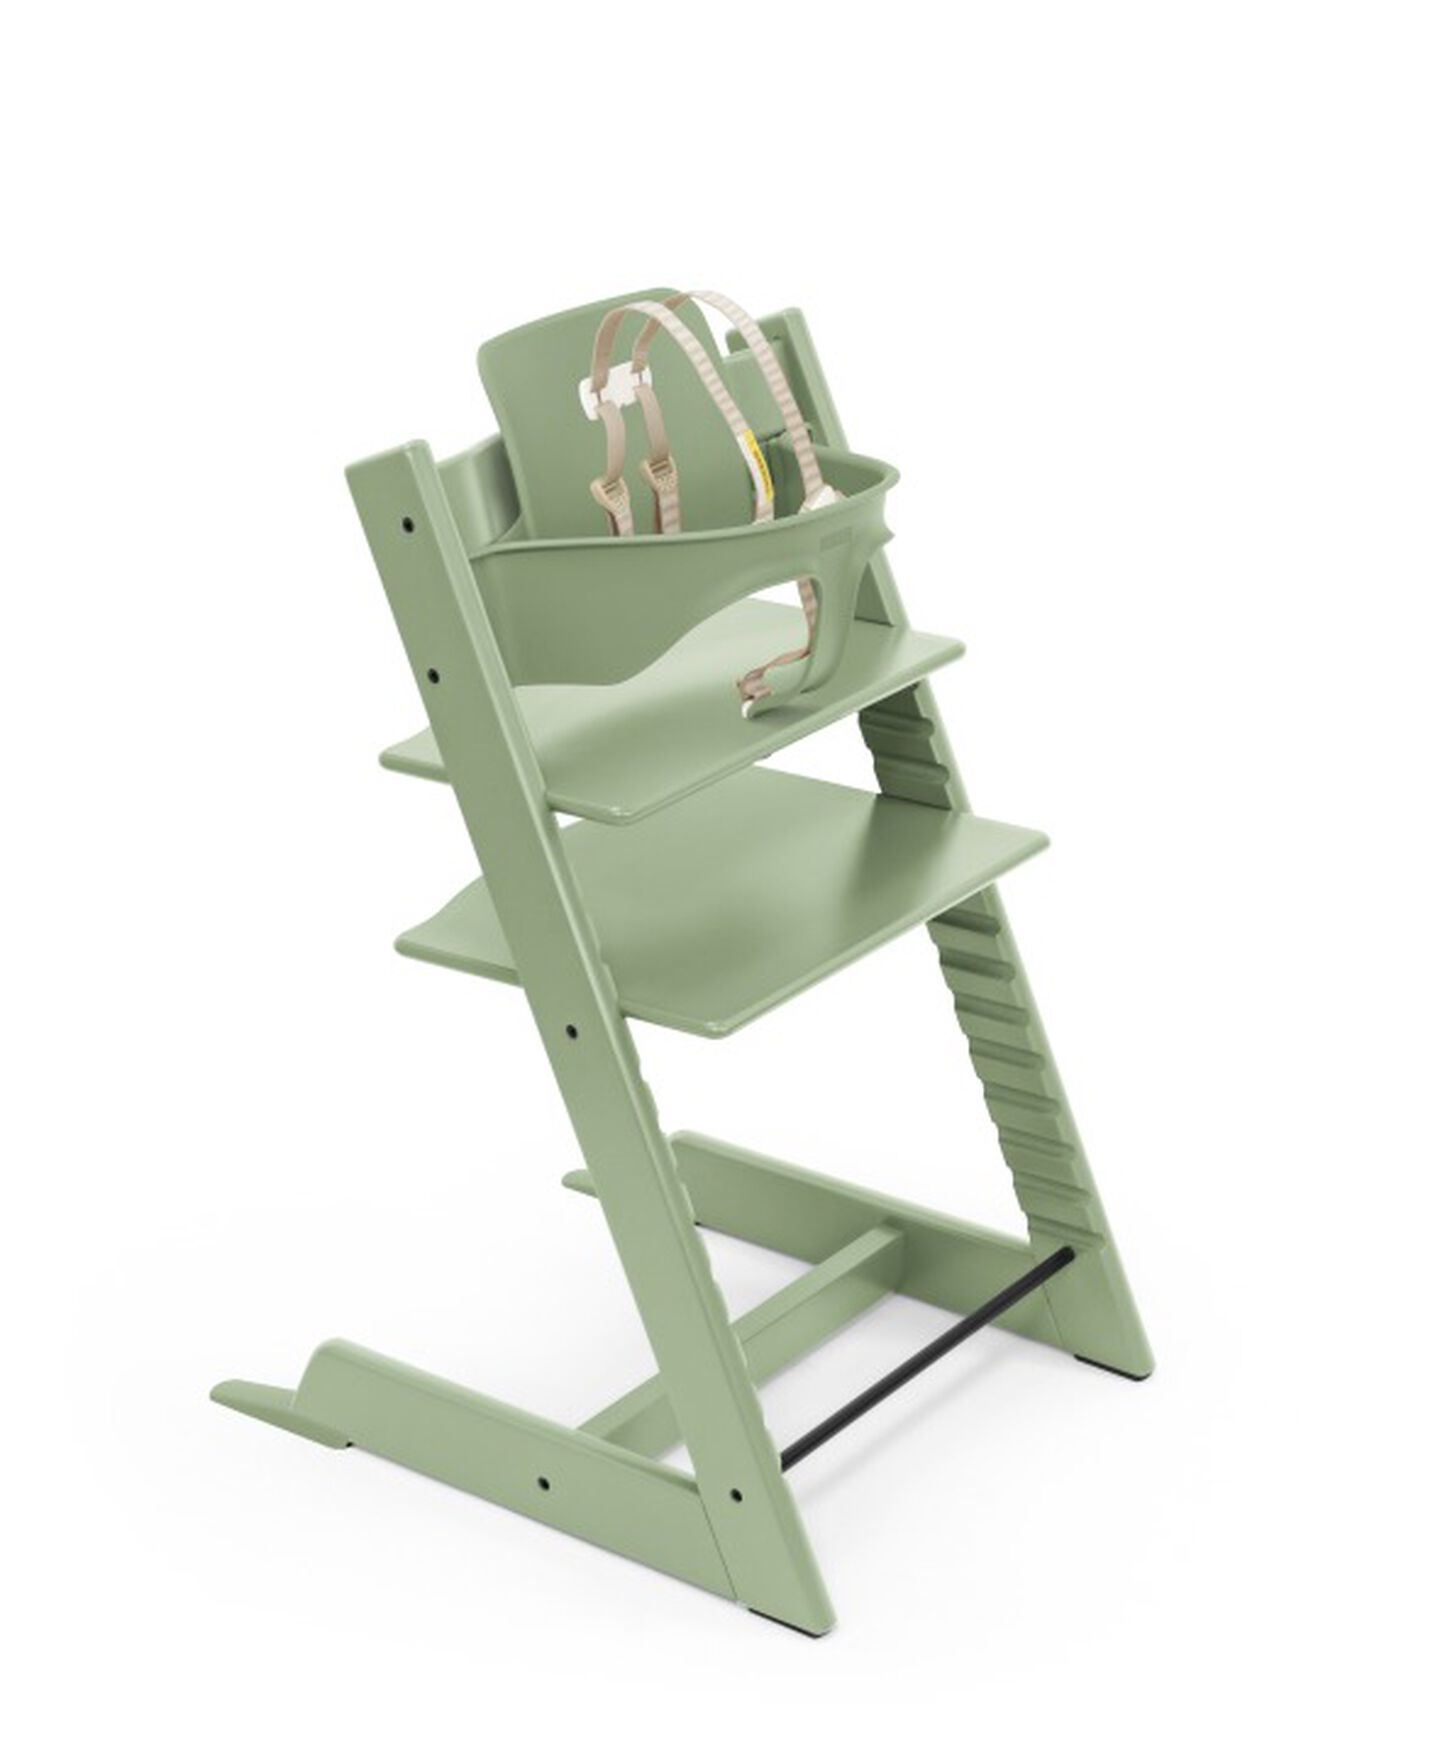 Tripp Trapp® Baby Set Moss Green, Moss Green, mainview